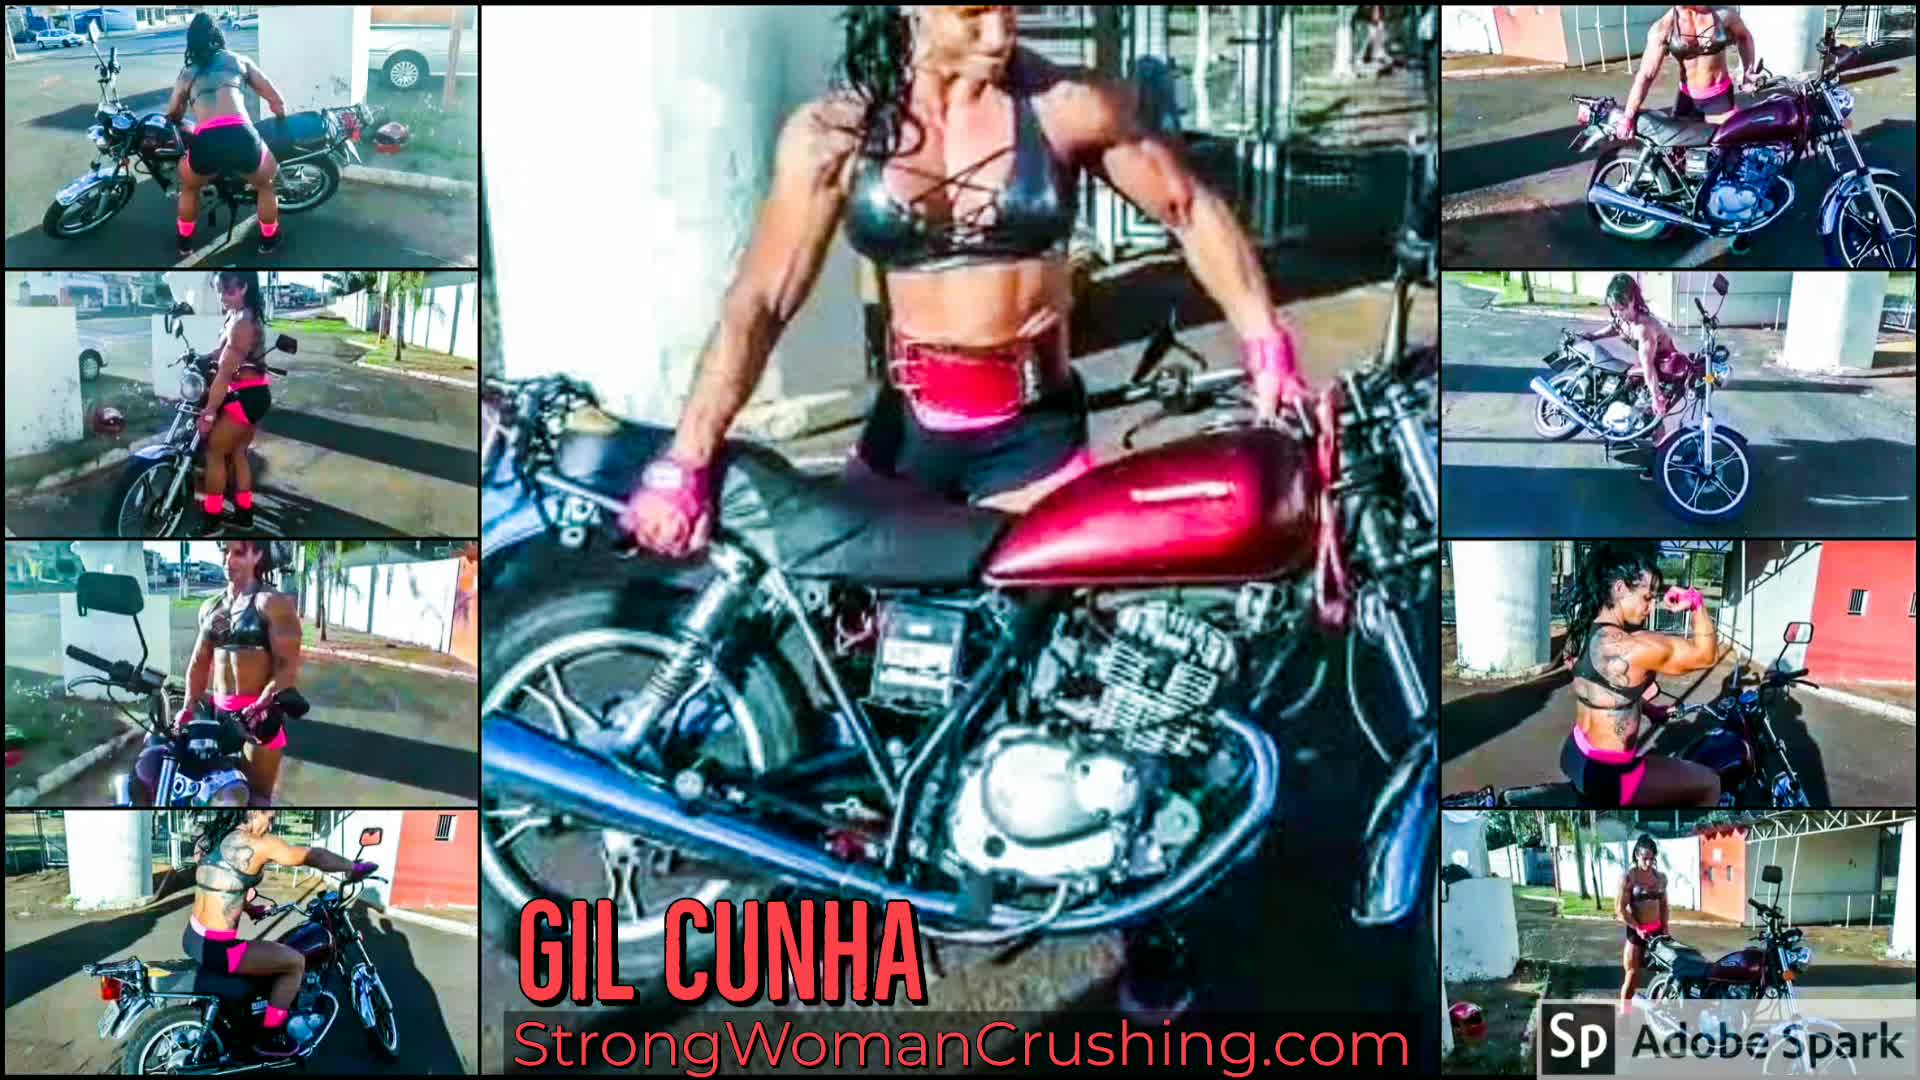 Gil Cunha Lifts A Heavy Motorcycle